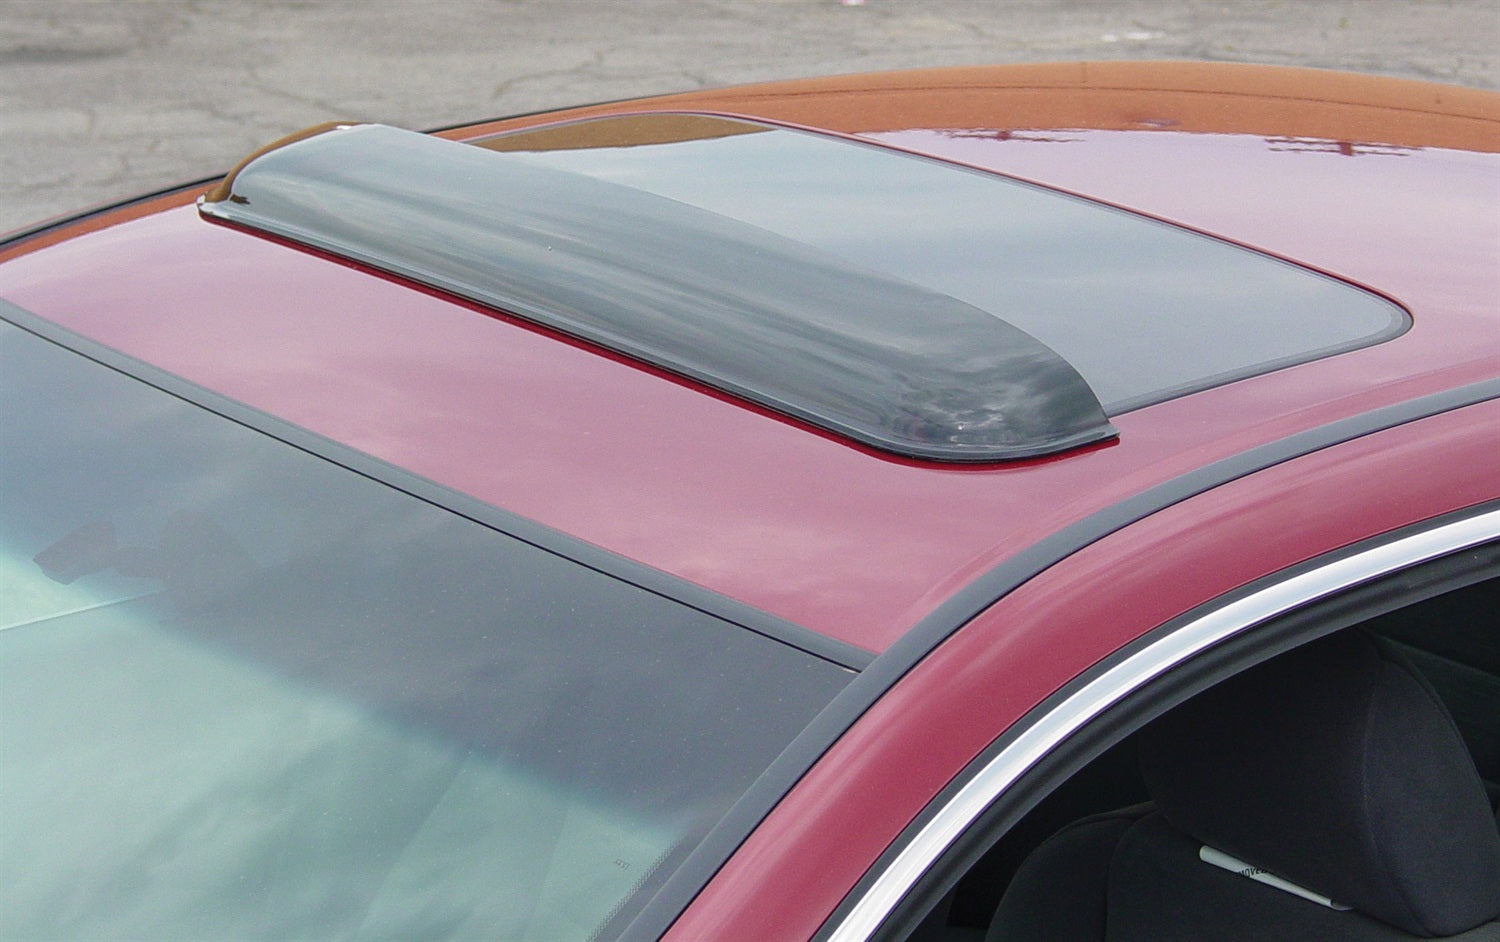 1994 Honda Civic Sunroof Wind Deflector